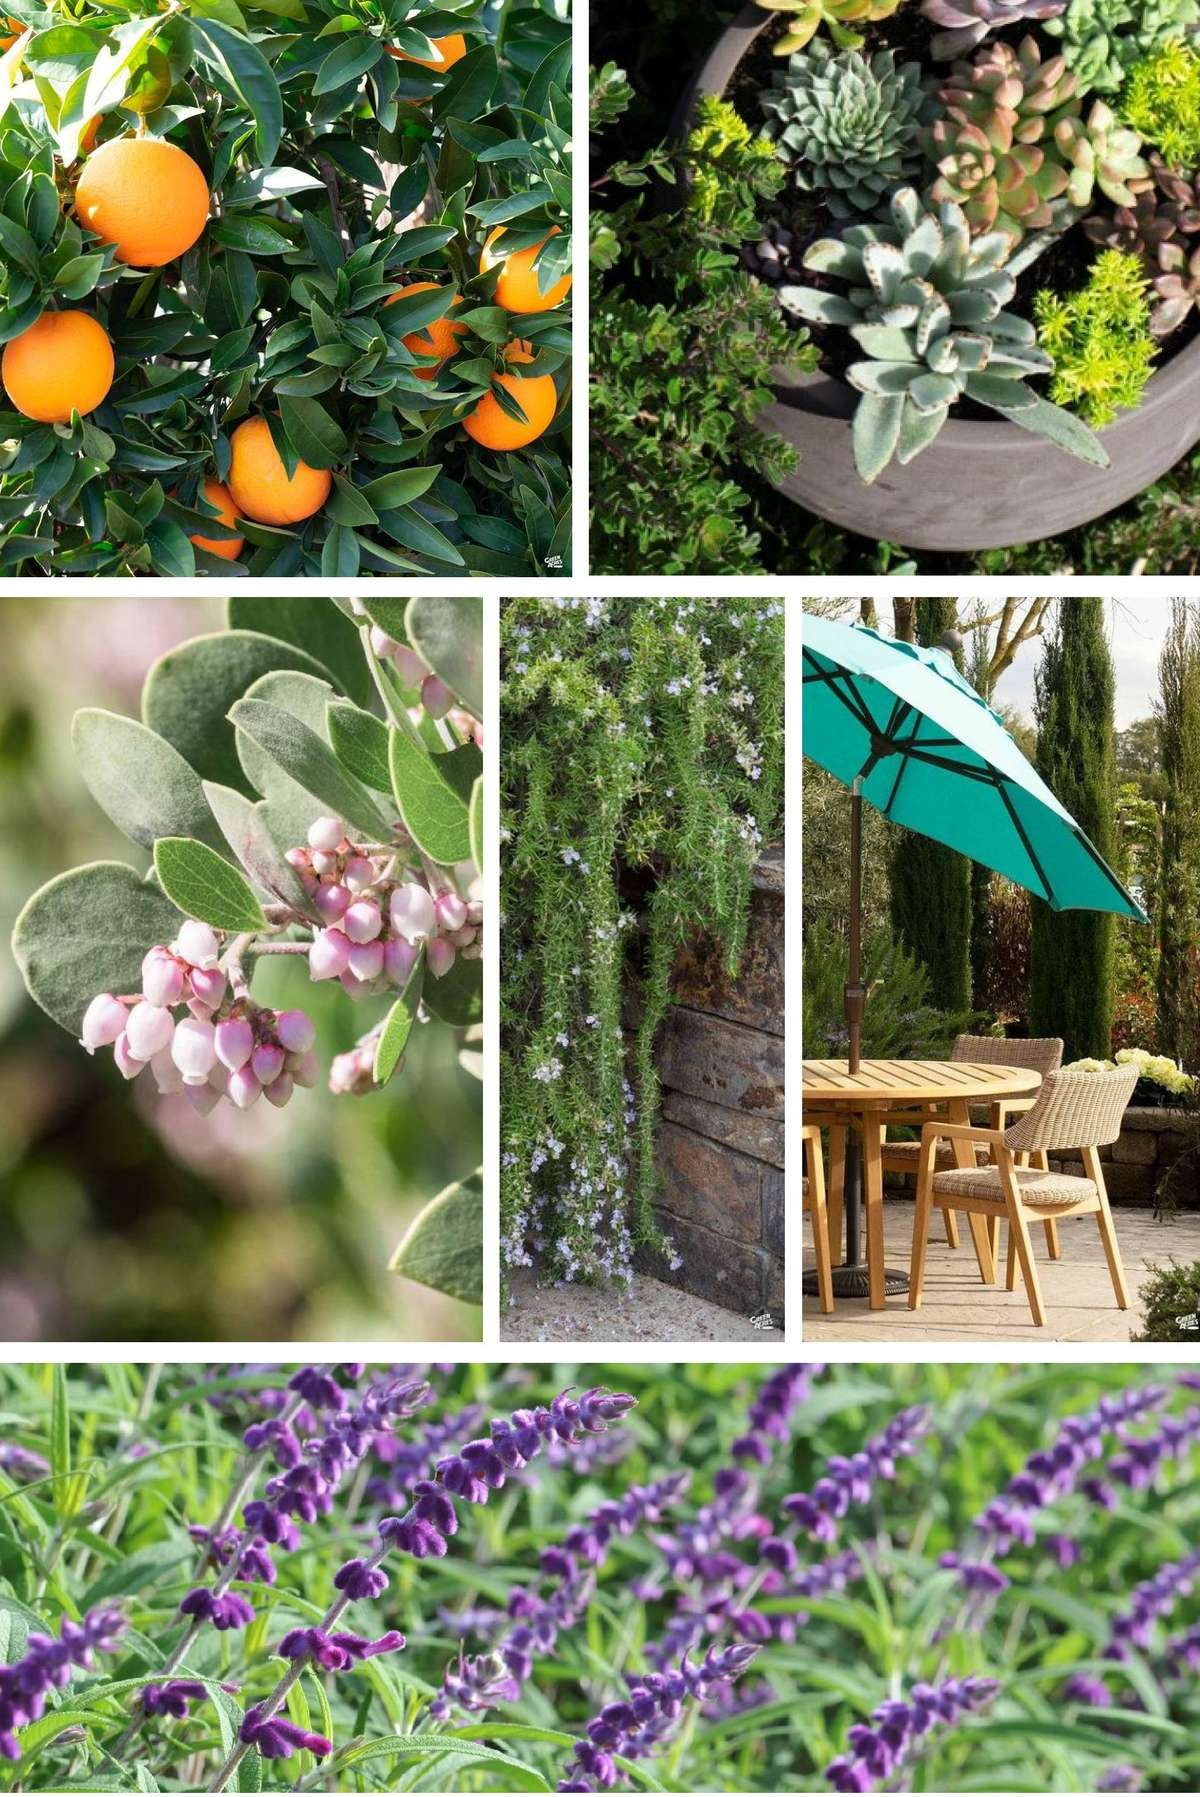 Collage of Images : Citrus, Succulent Bowl, Rosemary, Manzanita, Mexican Sage, Outdoor Dining Set